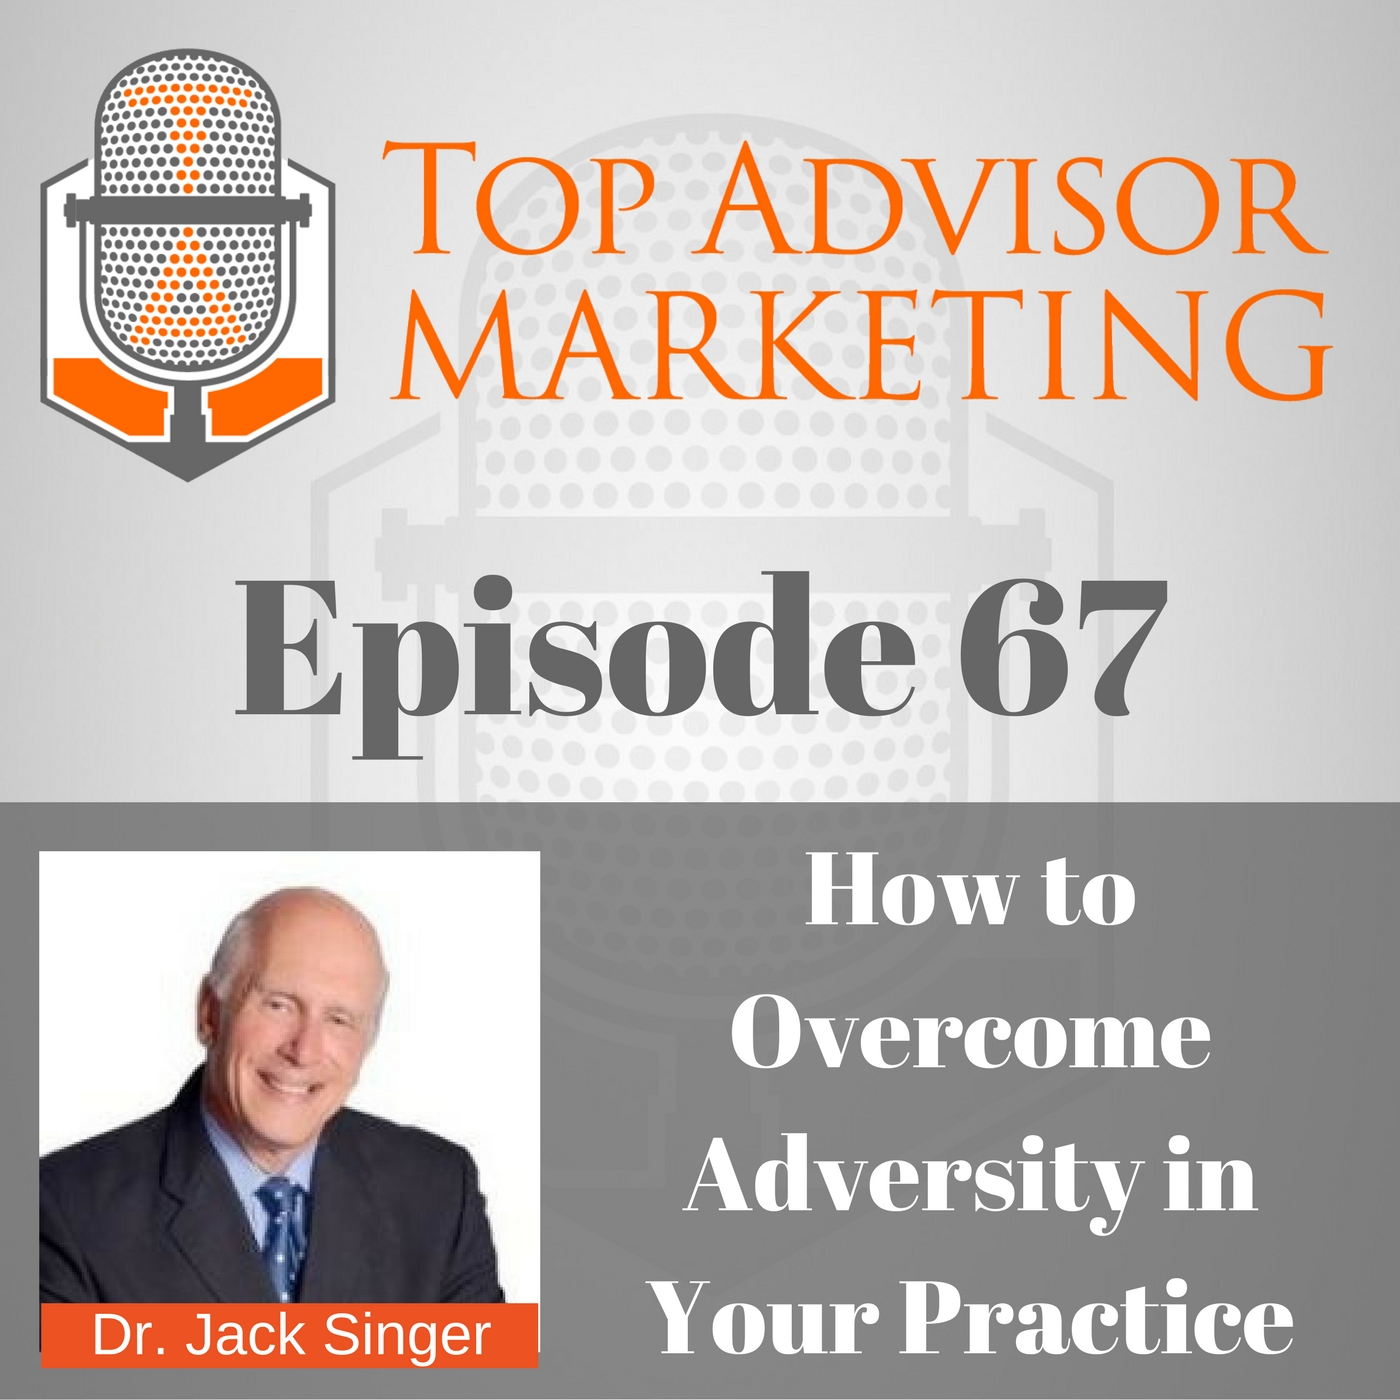 Episode 67 - How to Overcome Adversity with Dr. Jack Singer